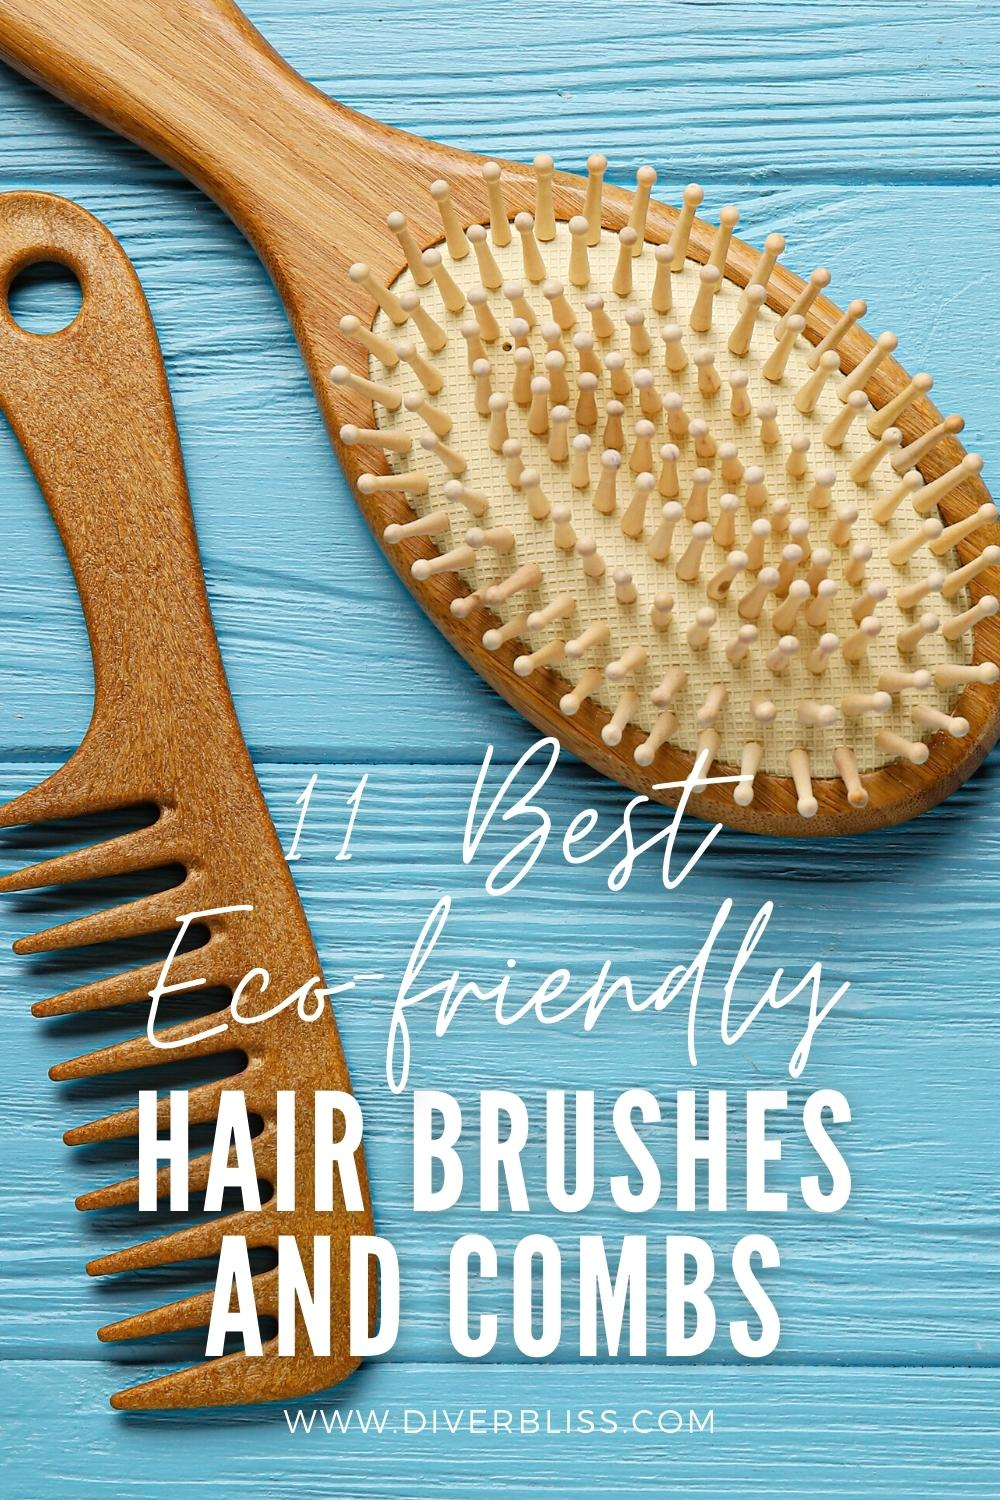 11 best eco friendly hair brushes and combs